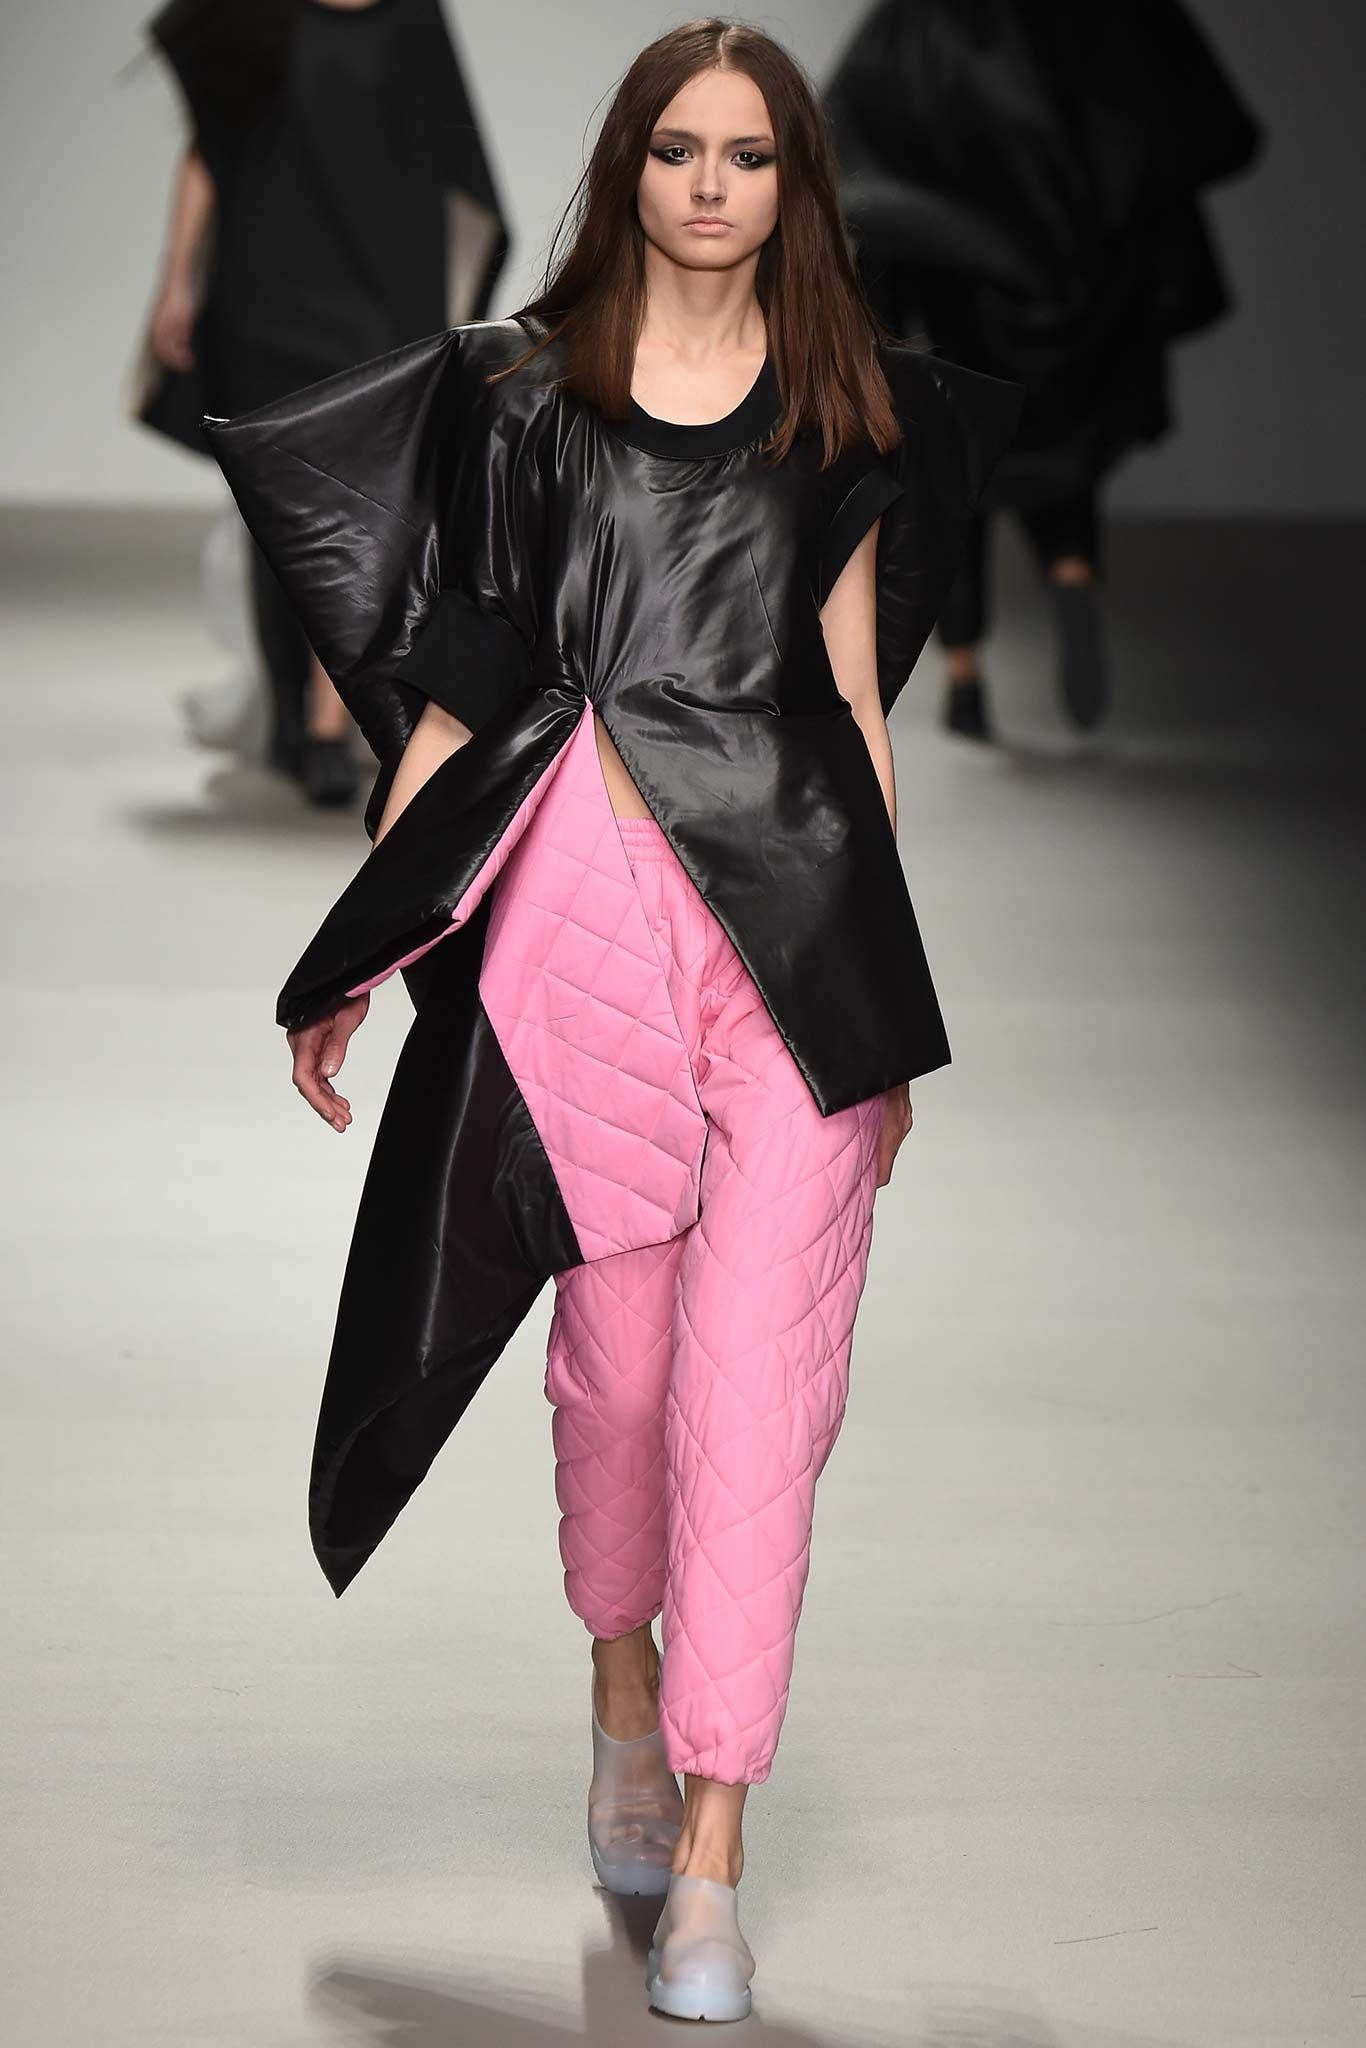 LOOK 65 (TOP) Central Saint Martins Fall 2015 Ready-to-Wear - Collection - Gallery - Style.com